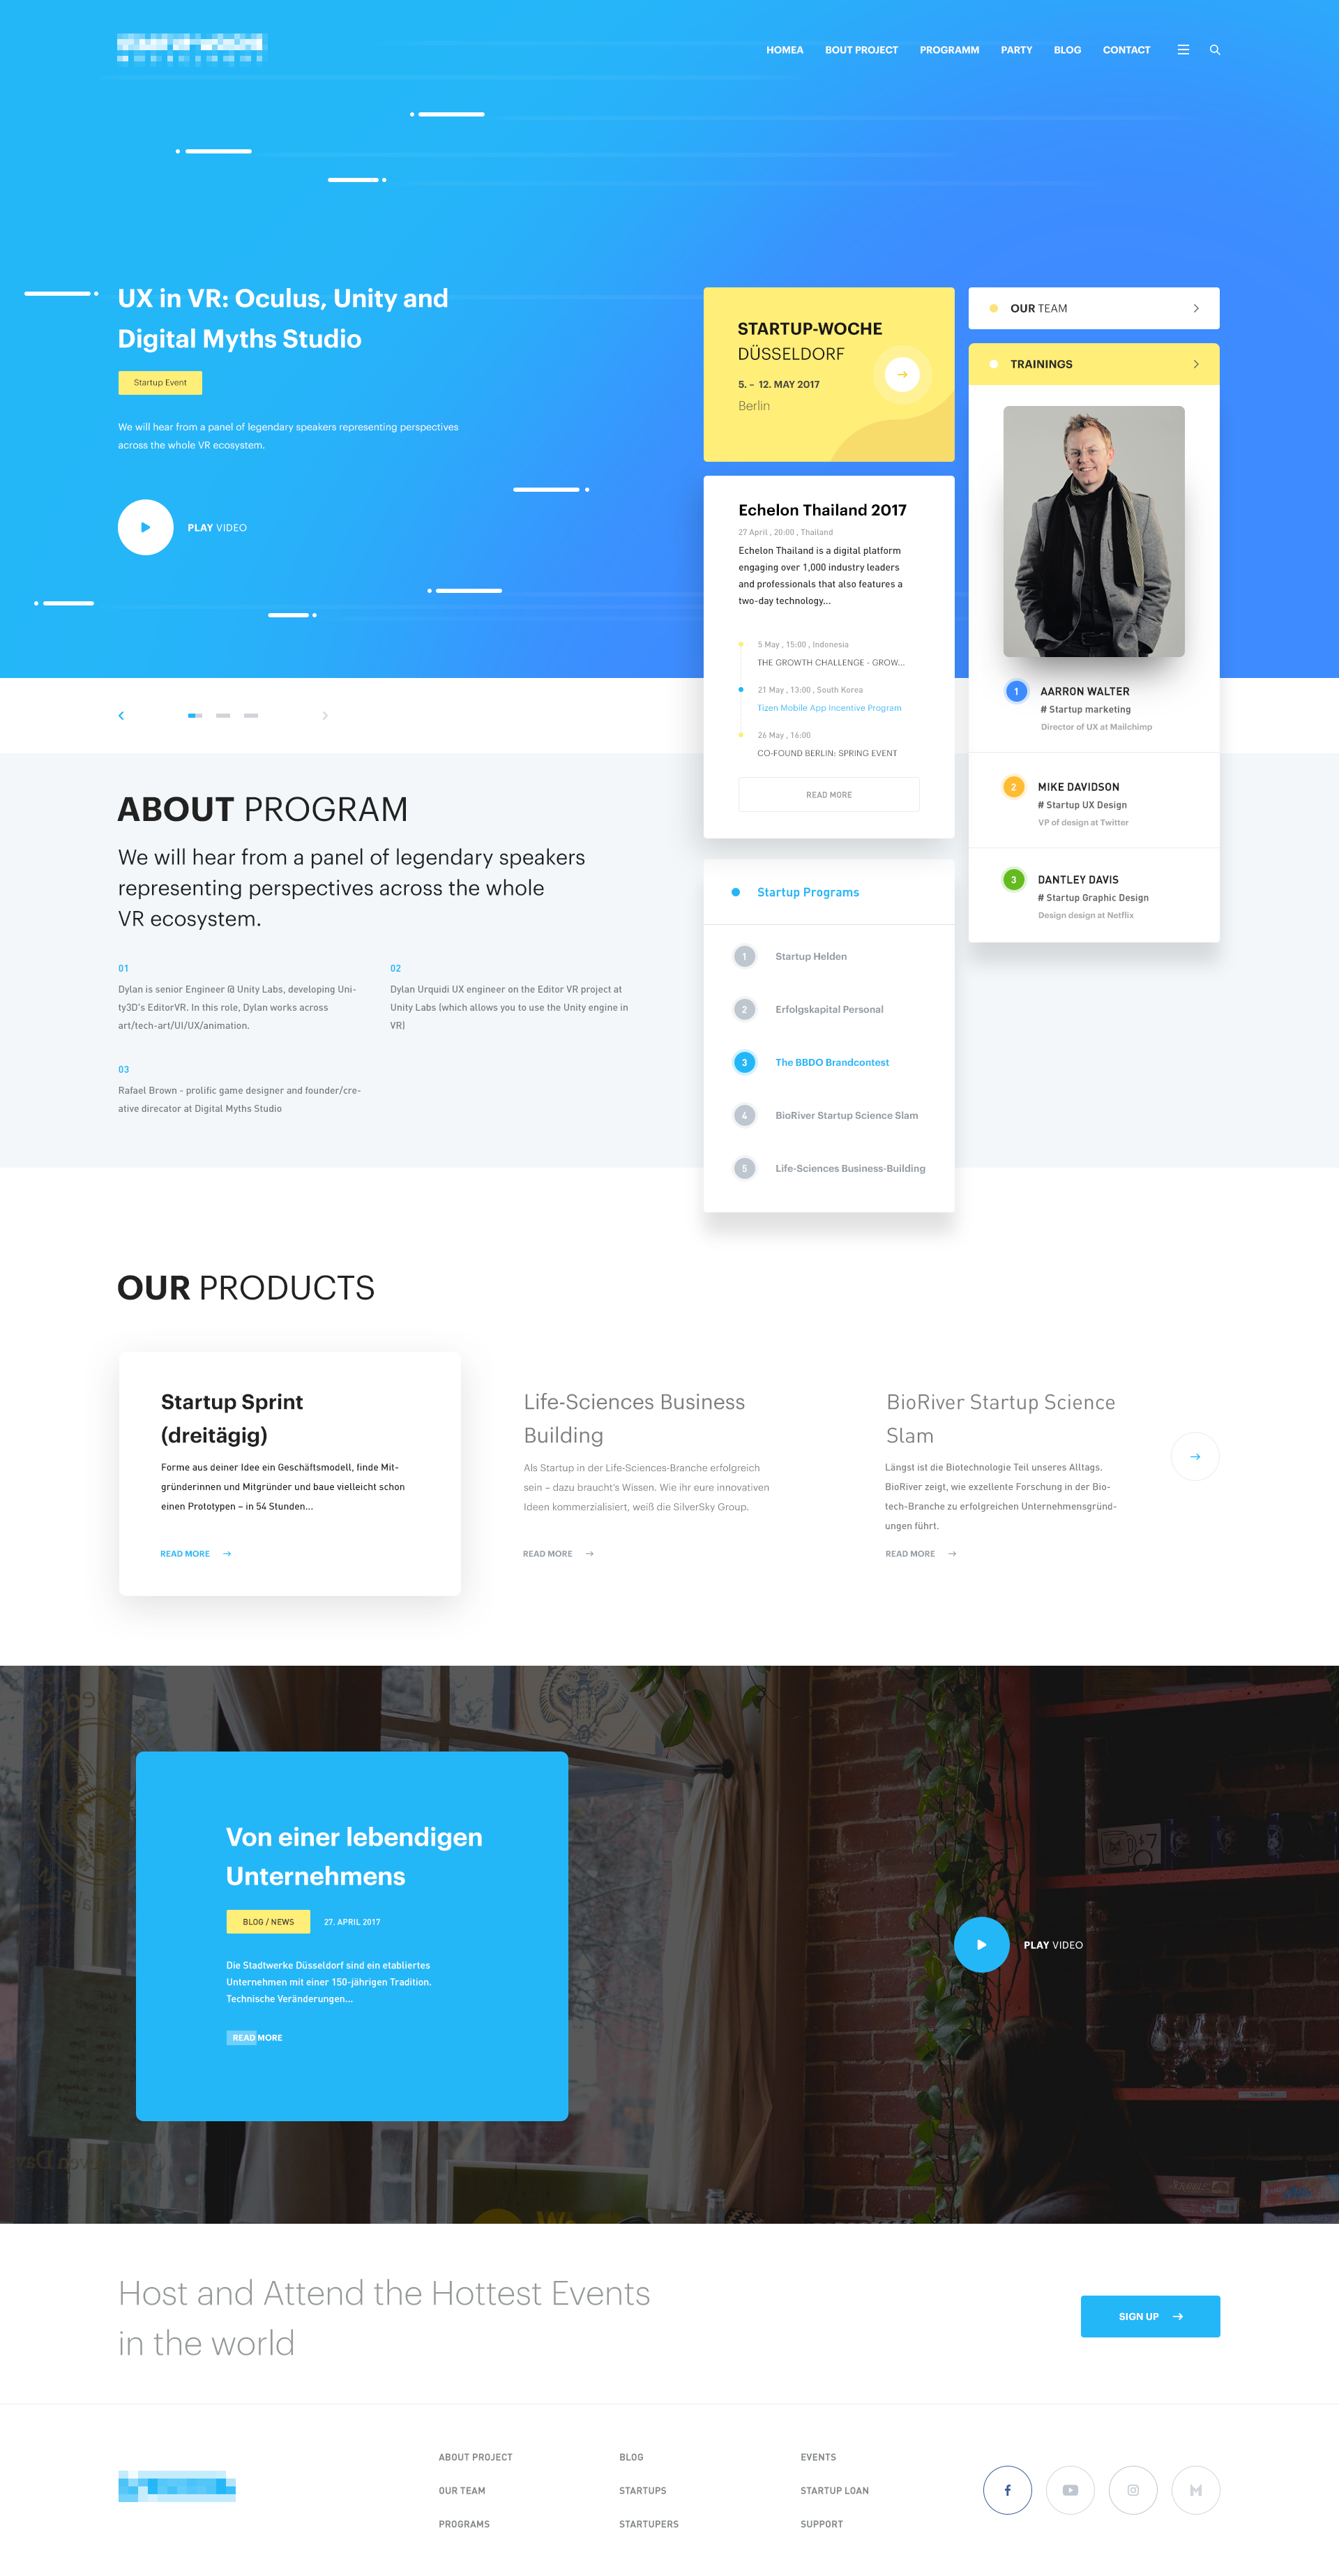 Startuper Design Wordpress Web Theme Design Designer Developer Development Company Dit Interactive Web Design Tips Web Design Business Web Design